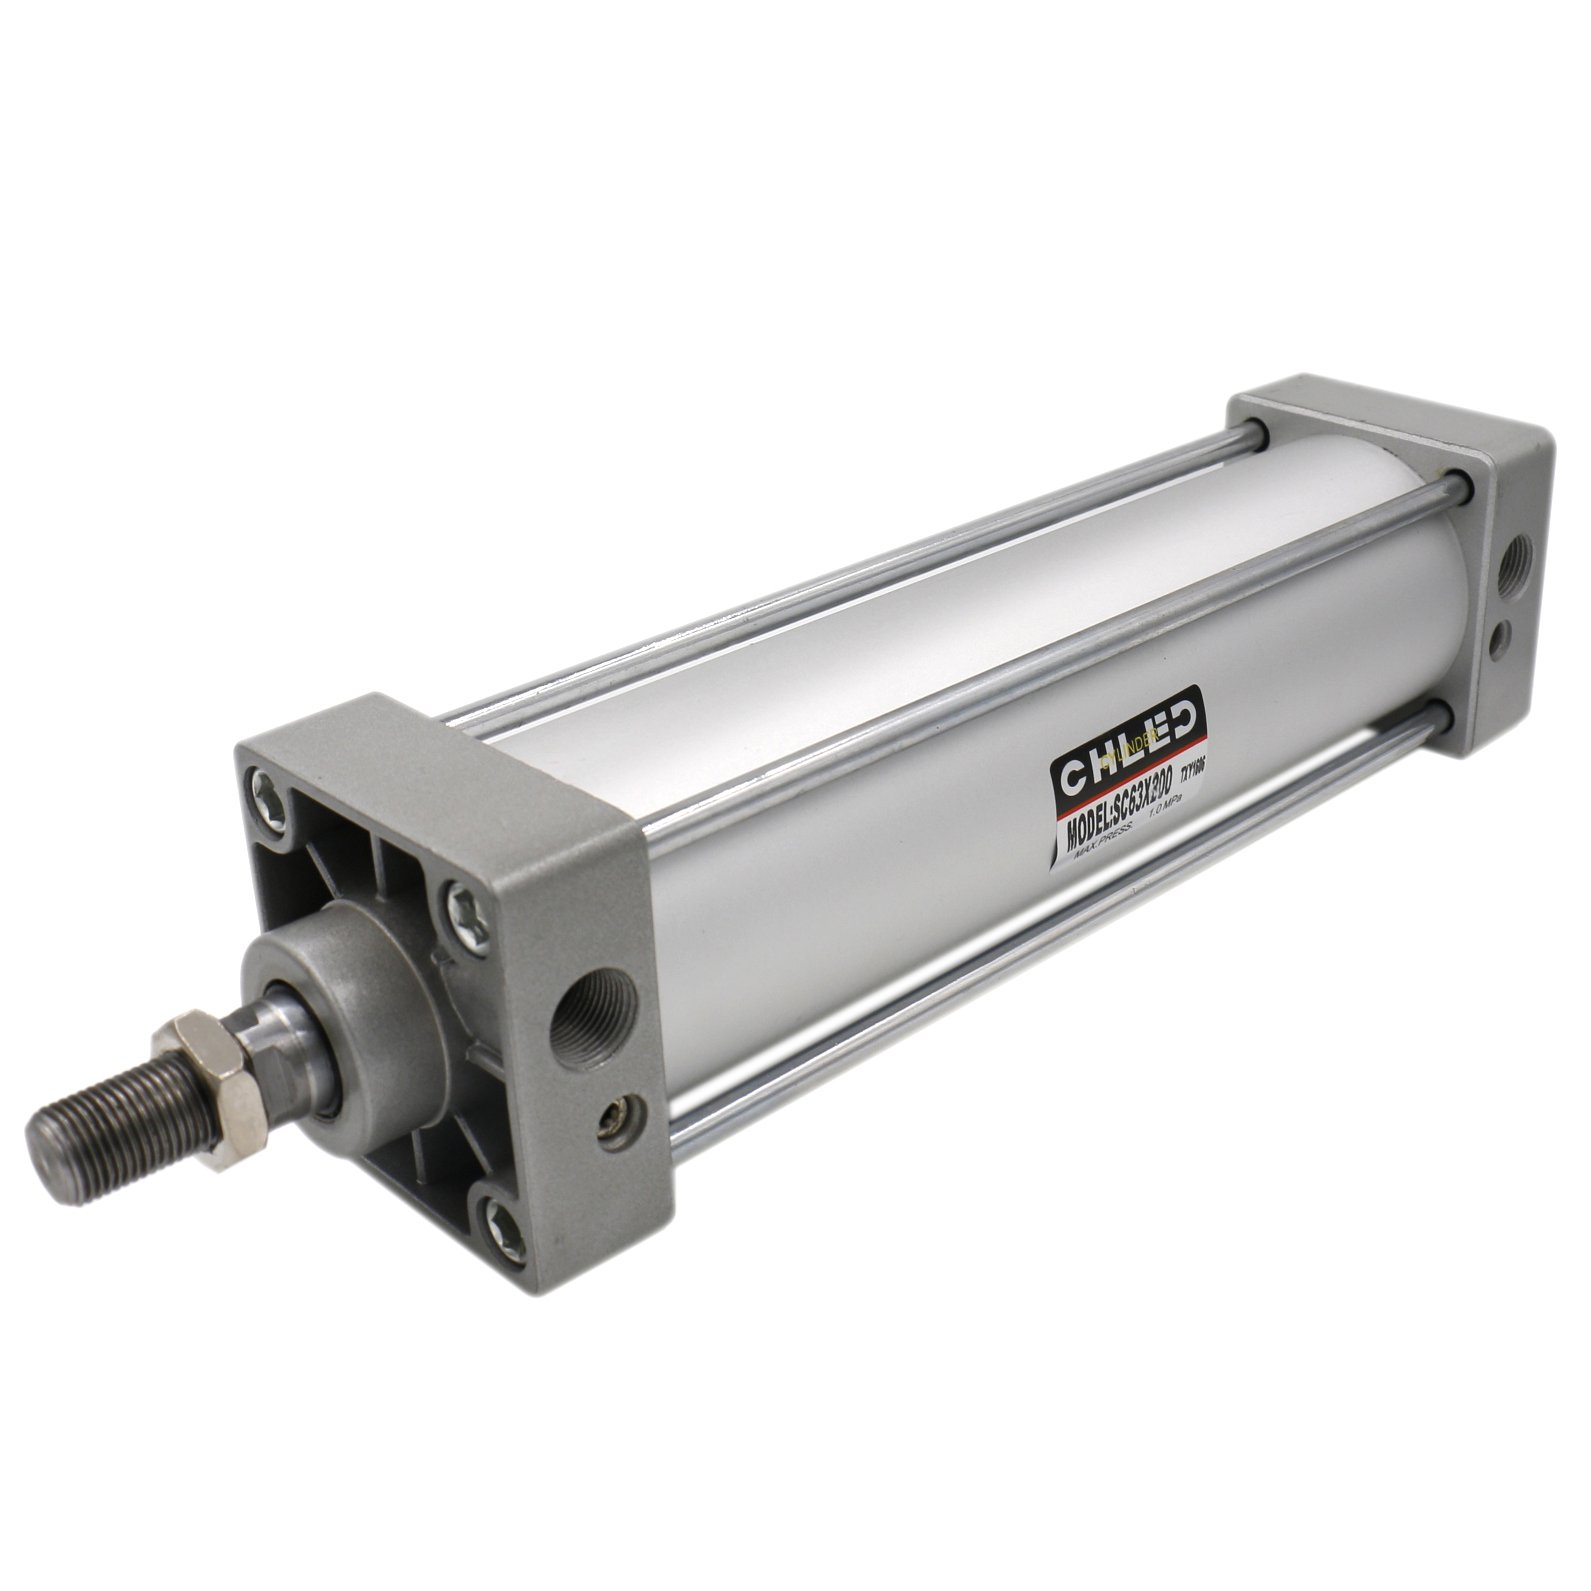 Baomain Pneumatic Air Cylinder SC 63 x 200 PT 3/8, Bore: 2 1/2 inch, Stroke: 8 inch, Screwed Piston Rod Dual Action